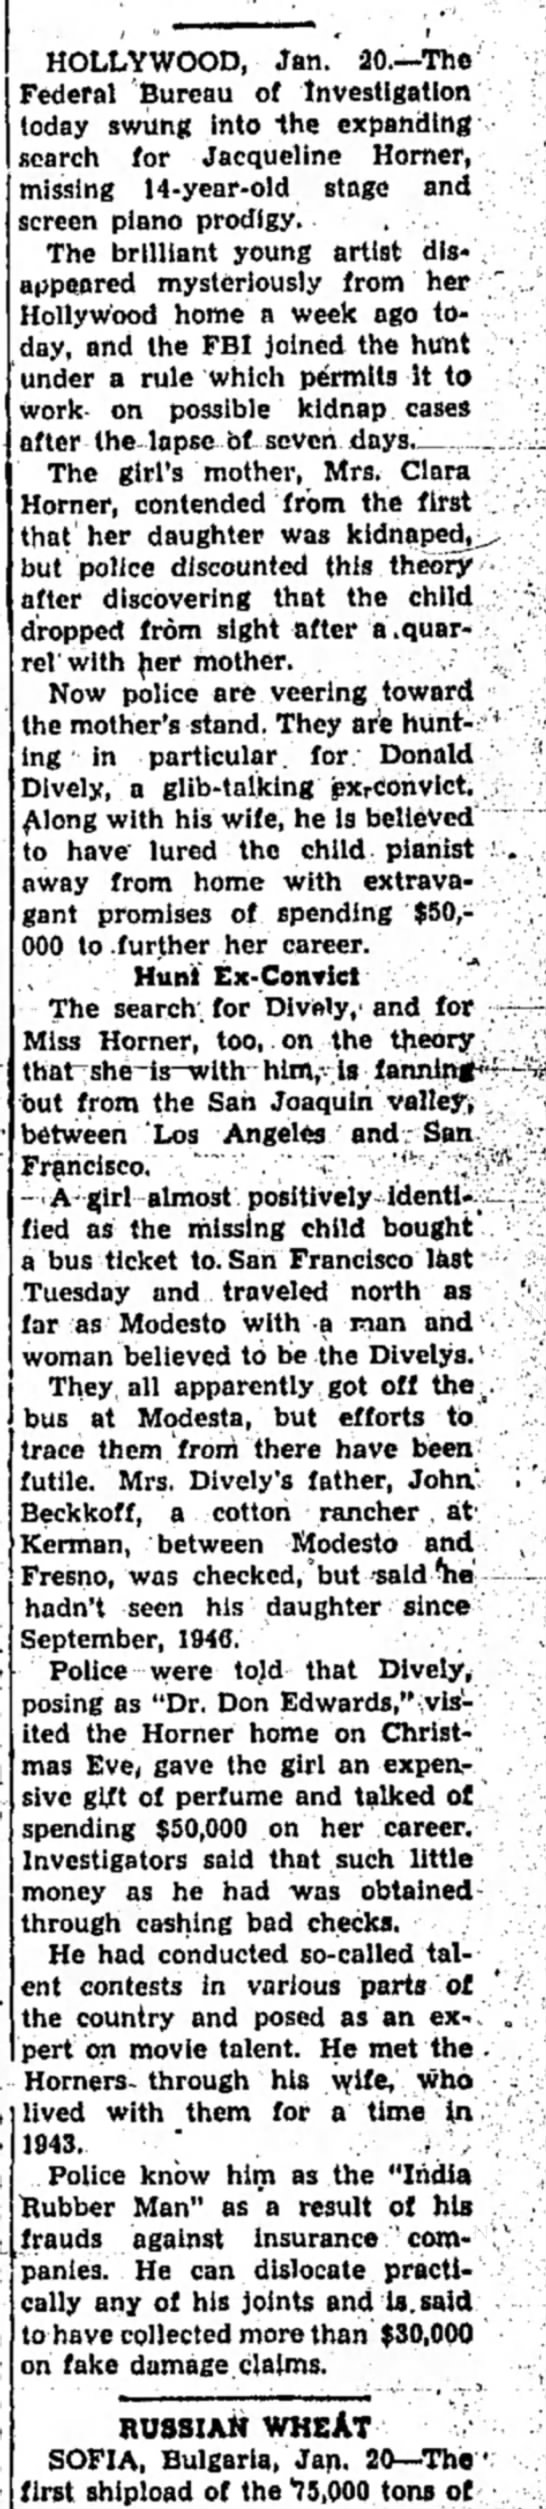 Donald R Dively CA in trouble again 1948 - HOLLYWOOD, Jan. 20.—The Federal Bureau of...